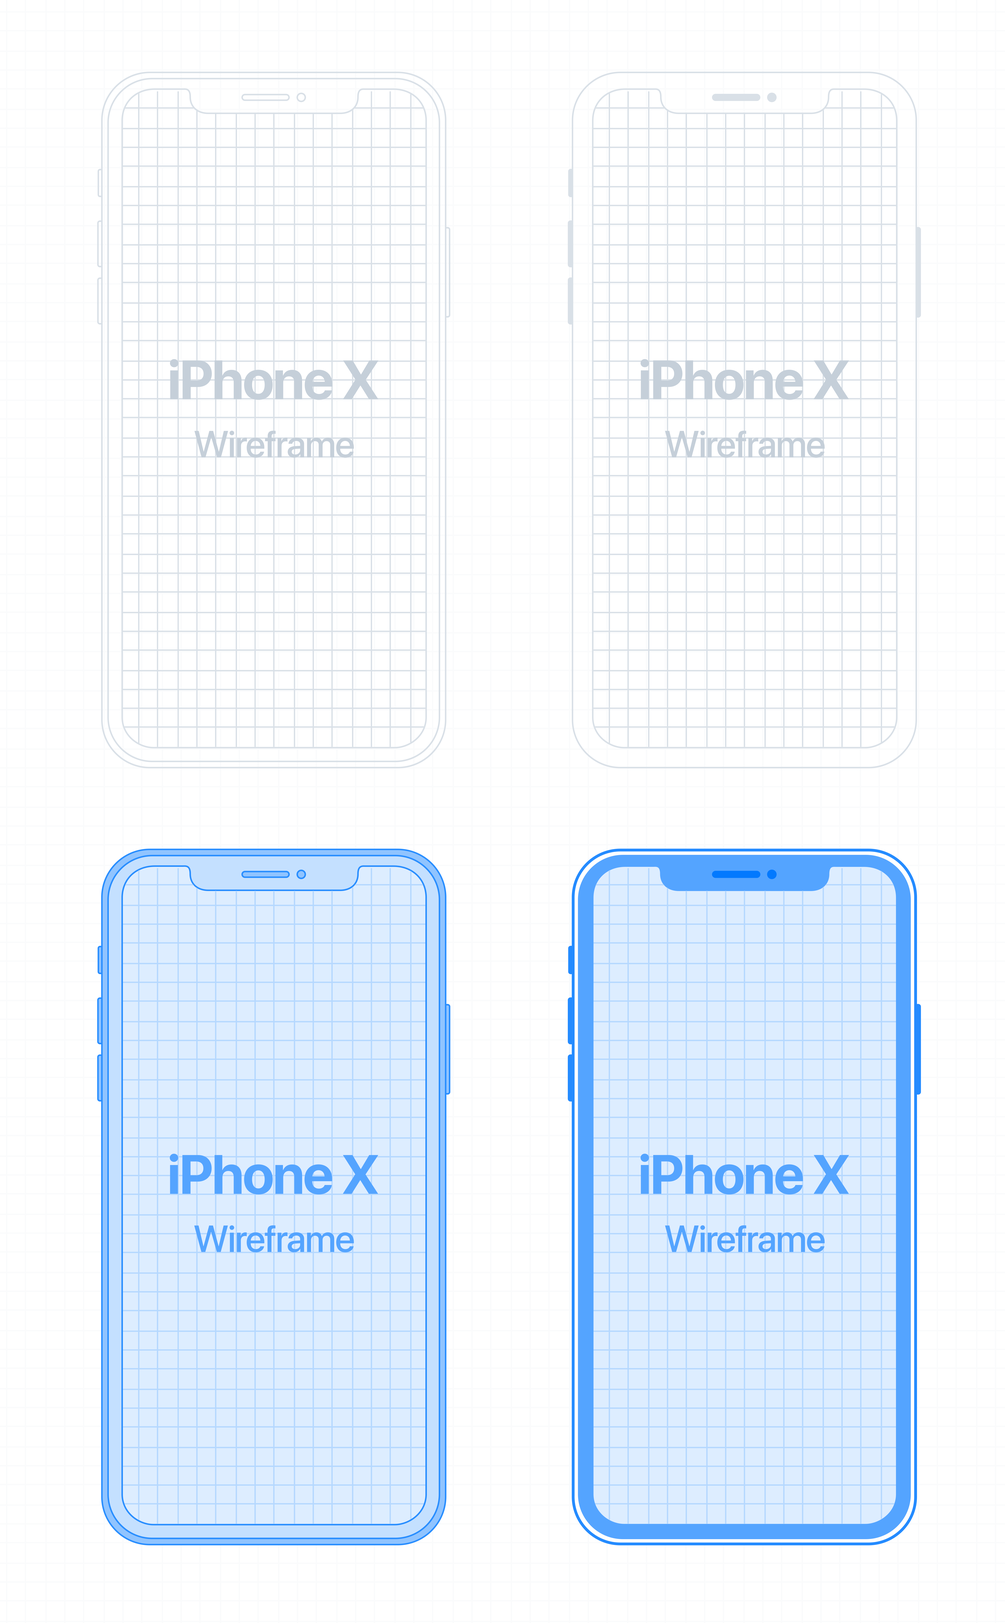 Mockups iPhone X Wireframe